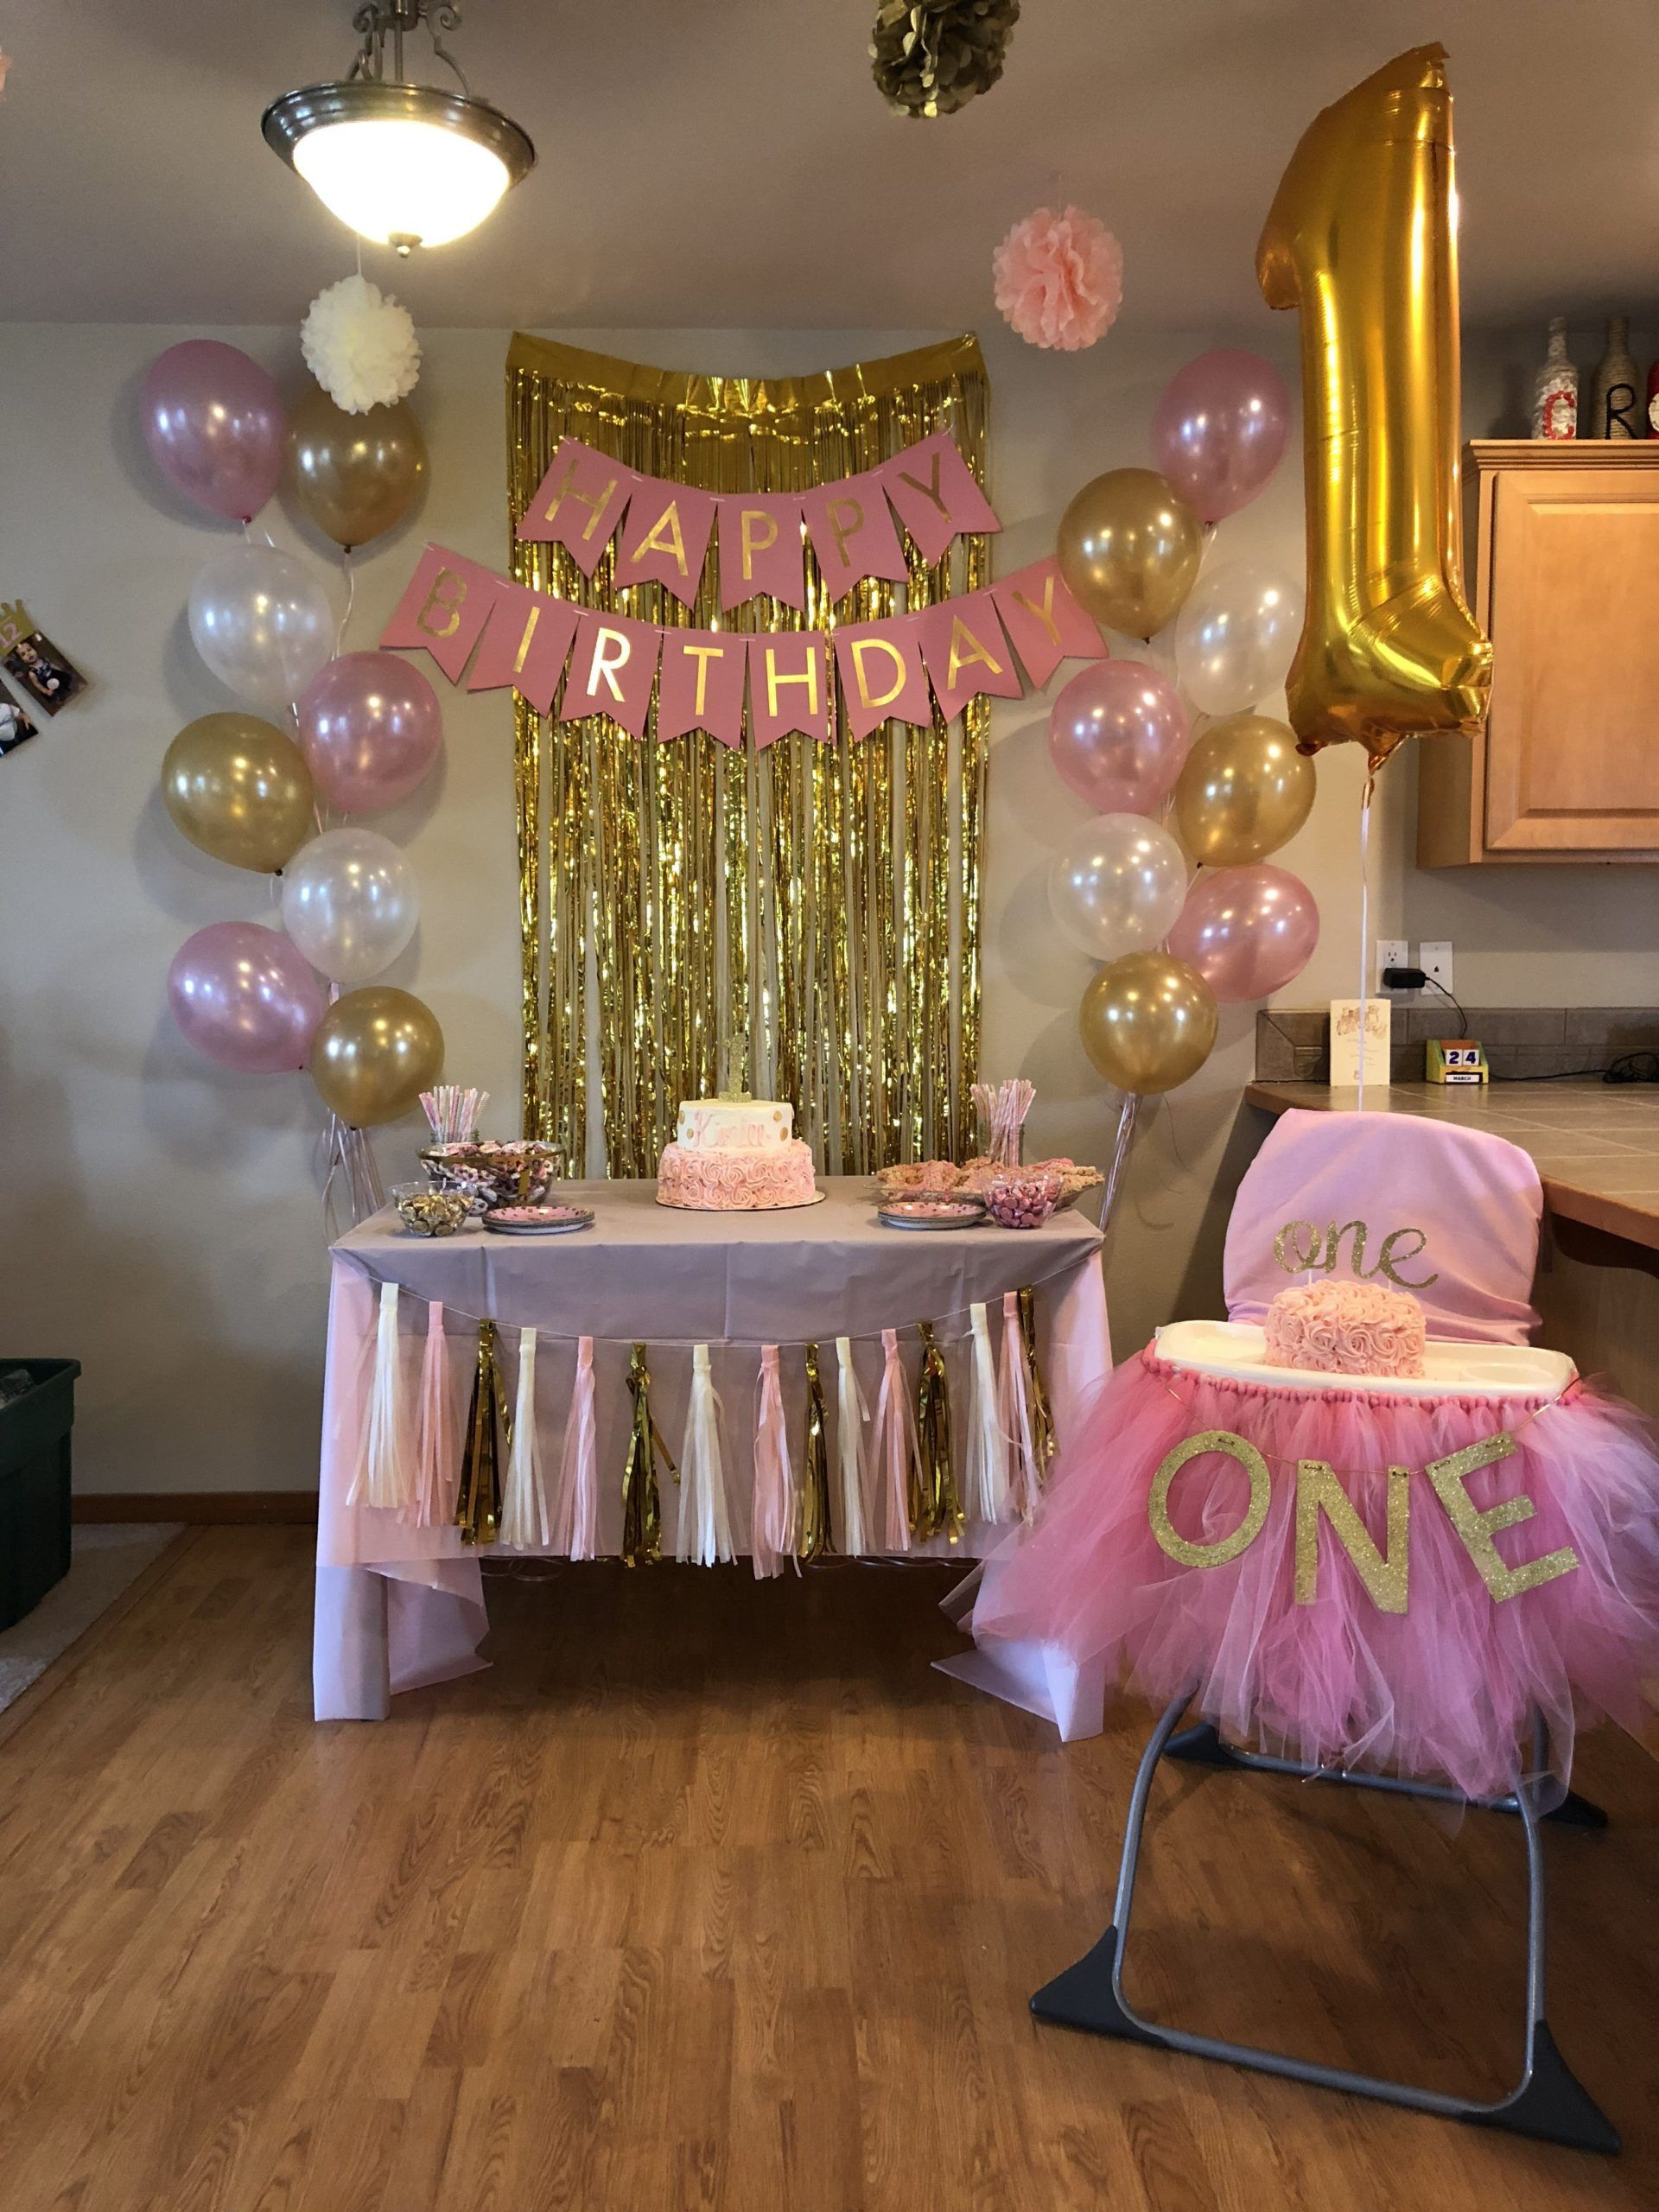 1 Geburtstagsideen Firstbirthdaygirl 1 Geburtstagsideen In 2020 Girl Birthday Decorations 1st Birthday Girl Decorations 1st Birthday Party For Girls